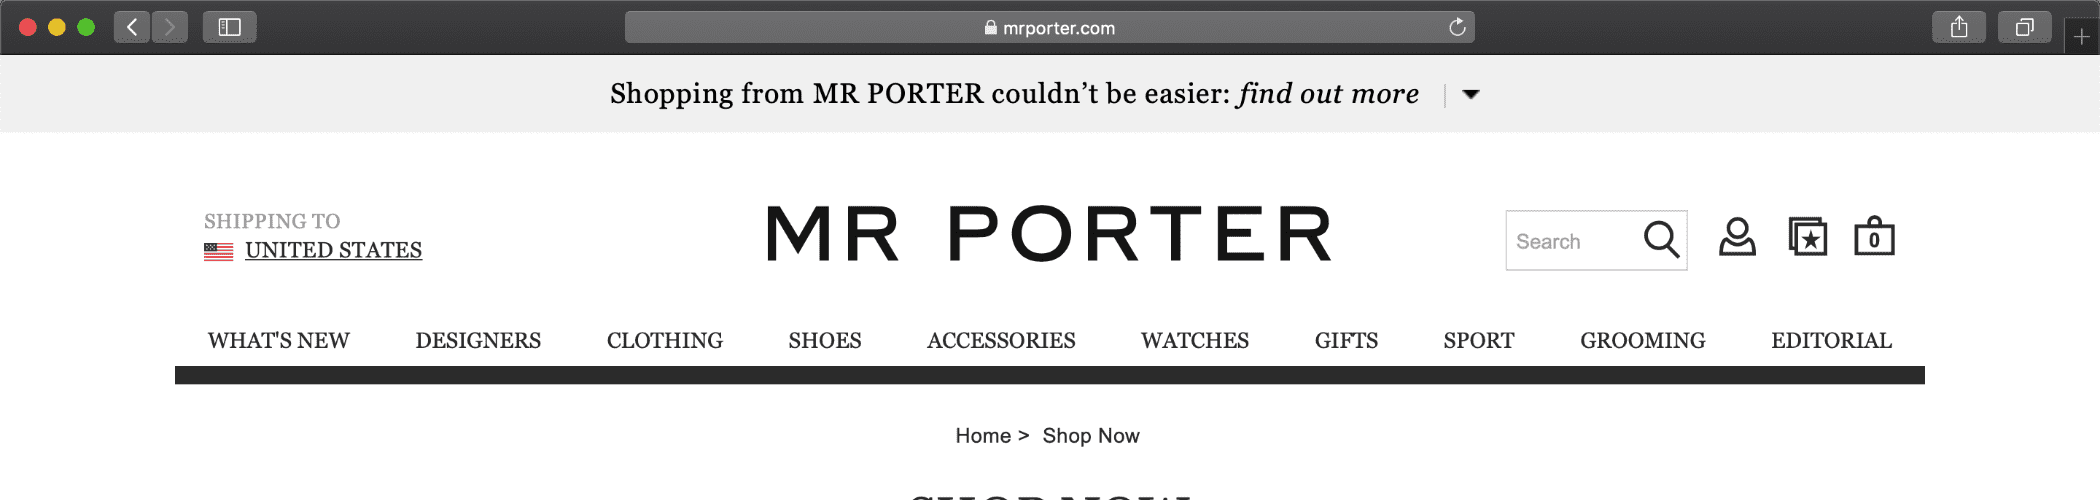 CLICK IMAGE TO BROWSE MR PORTER CYBER MONDAY DEALS